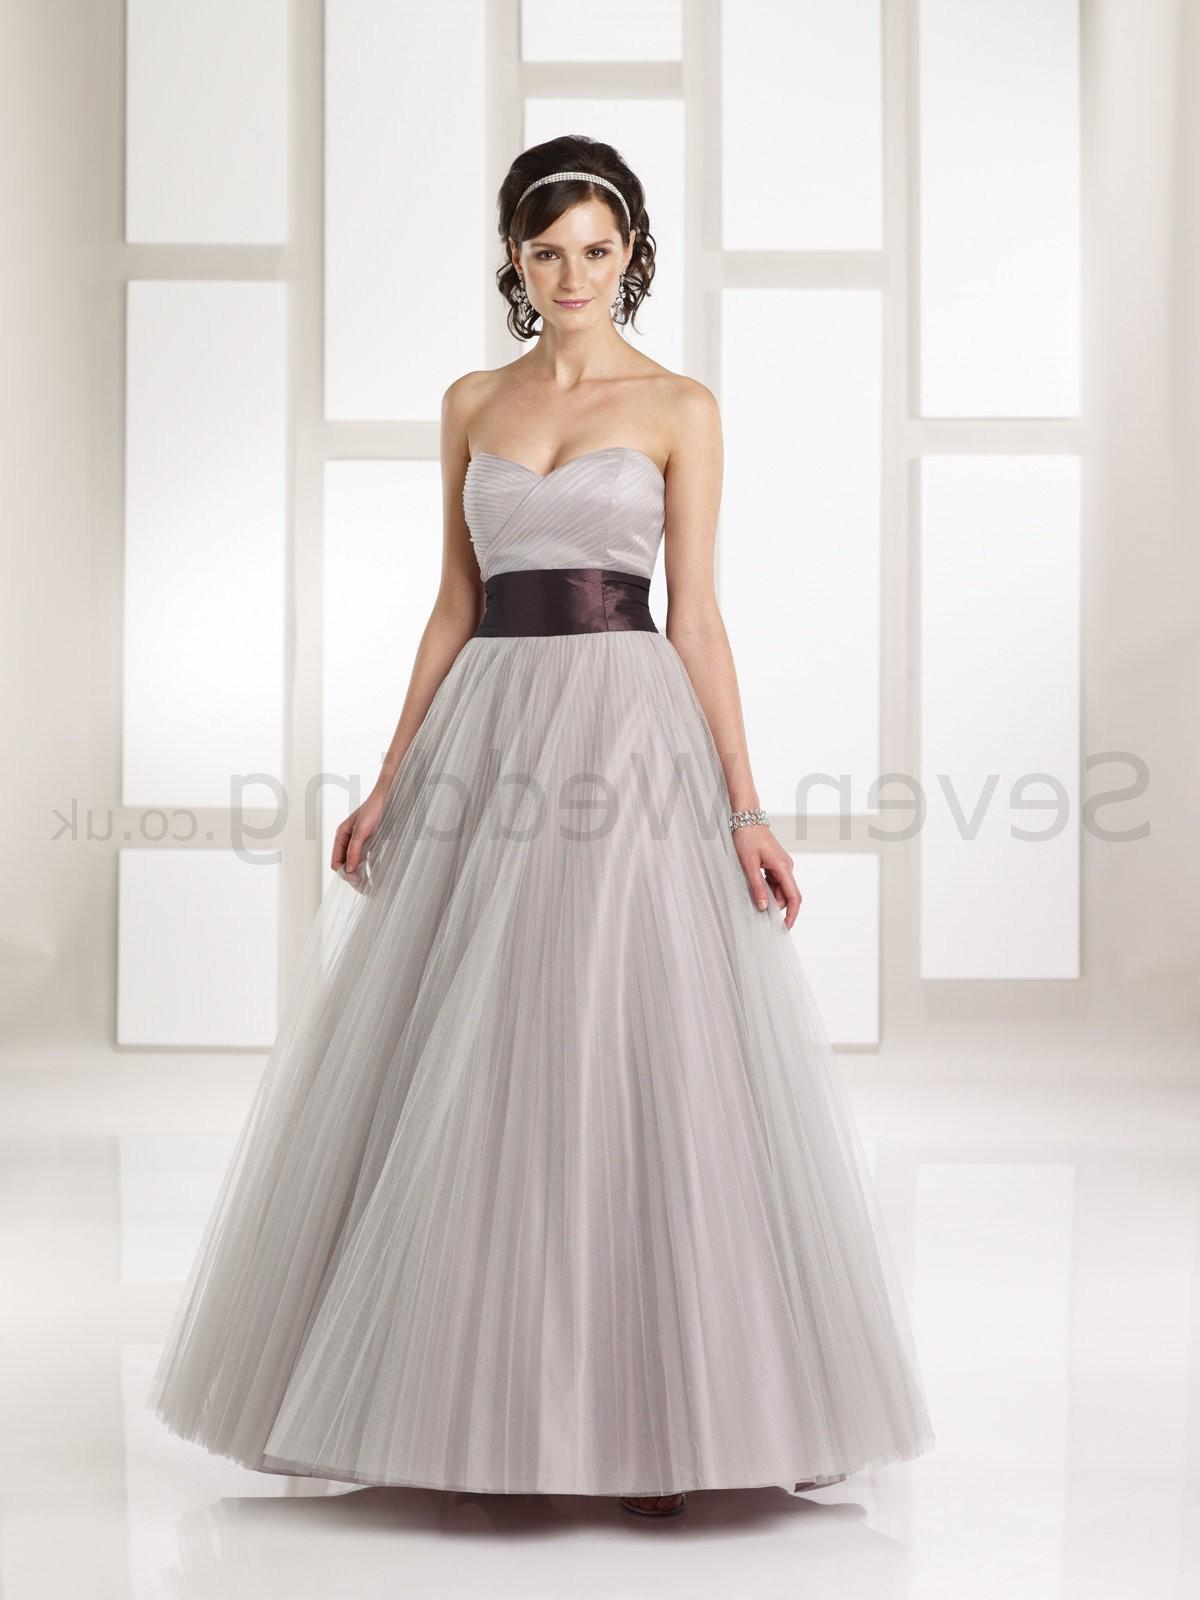 Wedding Party Dress. Tulle